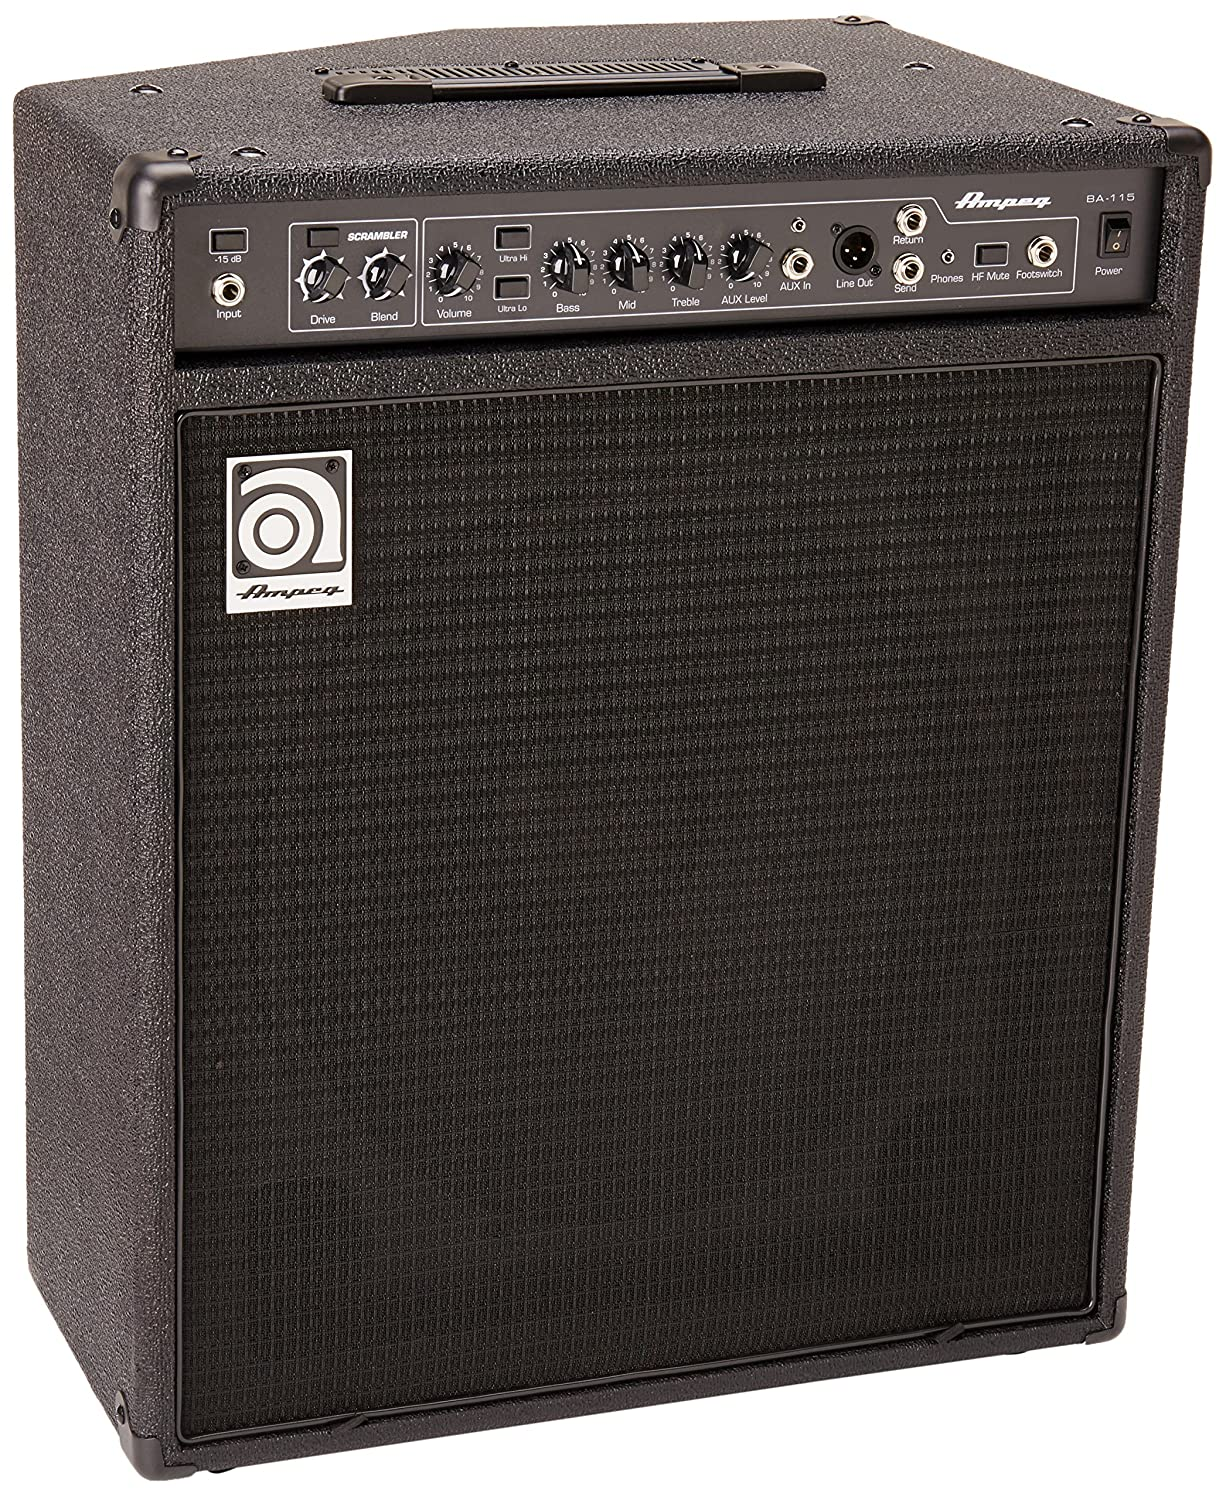 Ampeg BA115v2 1 x 15-Inch Combo Bass Amplifier Reviews 1